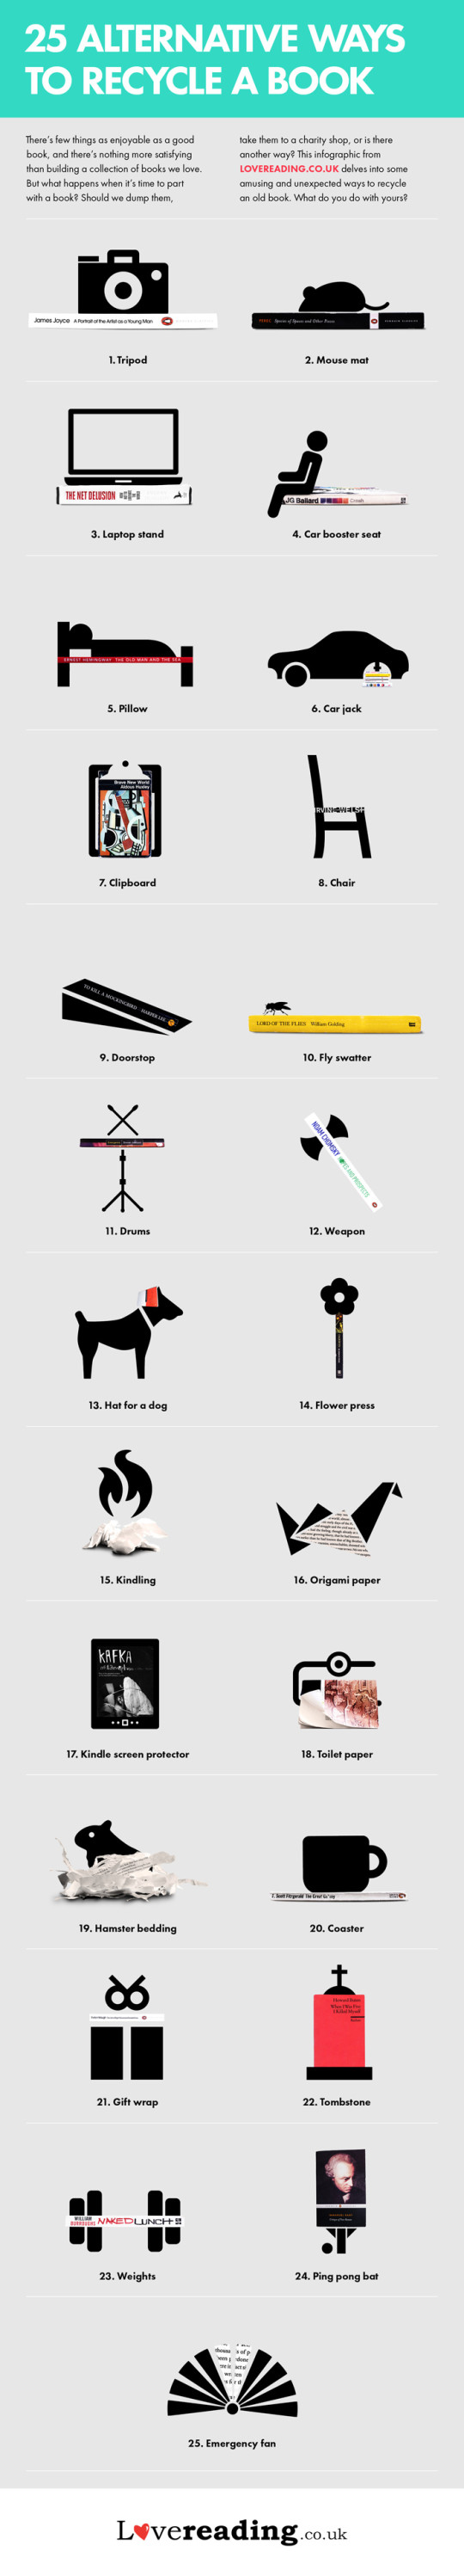 25 alternative ways to recycle a book #infographic